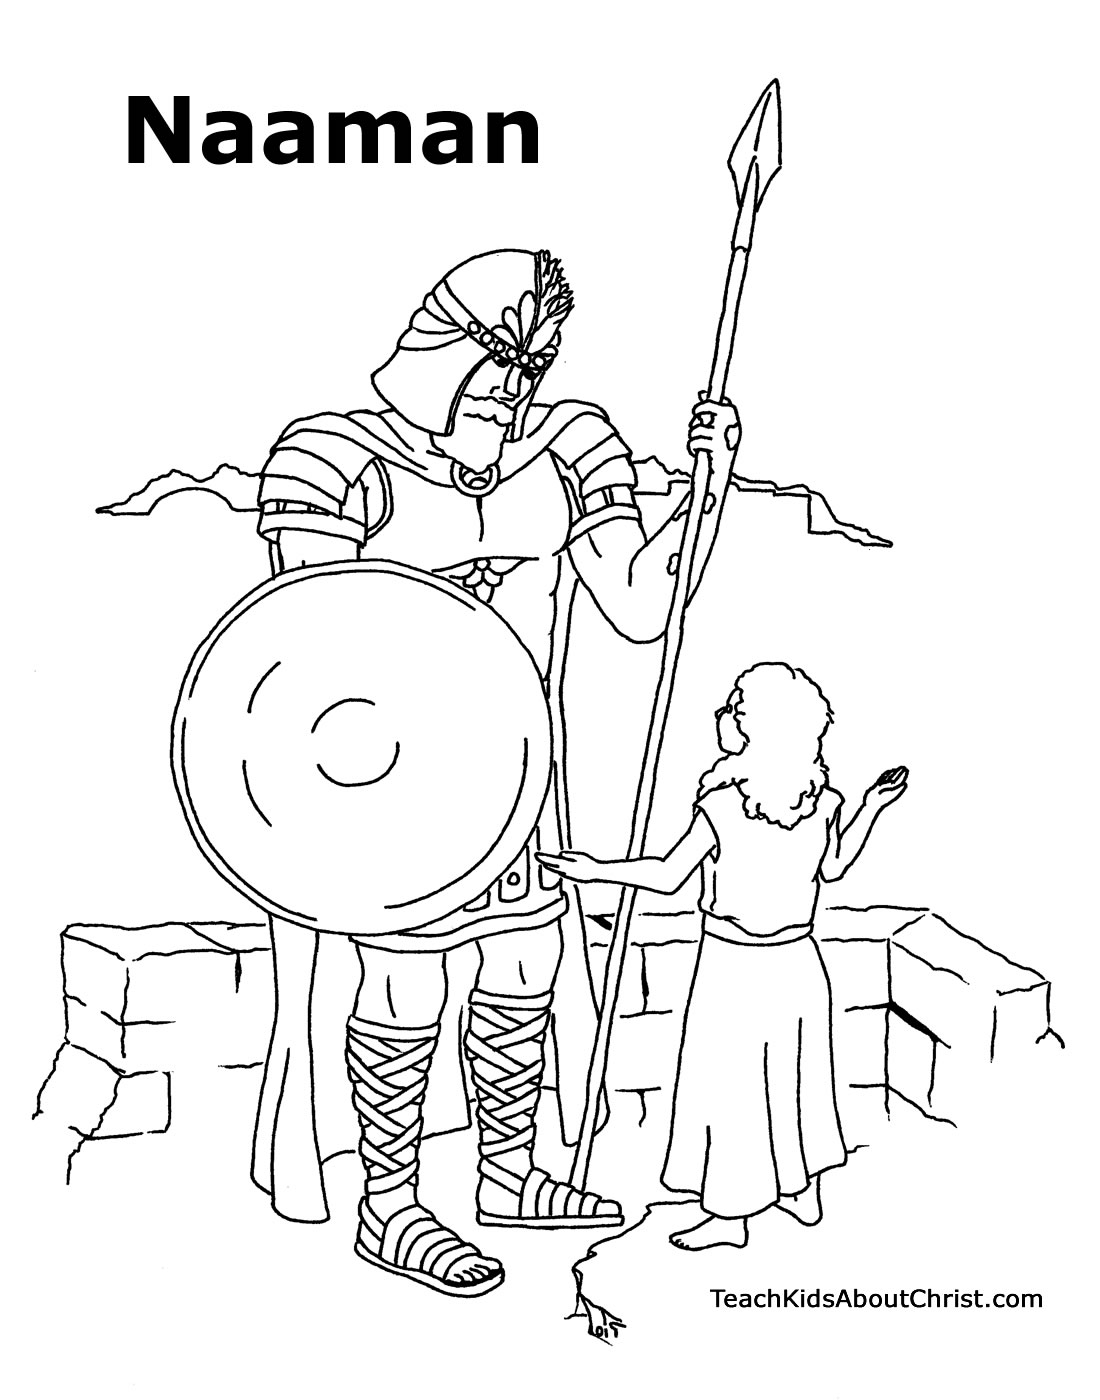 naaman bible coloring pages - photo #1